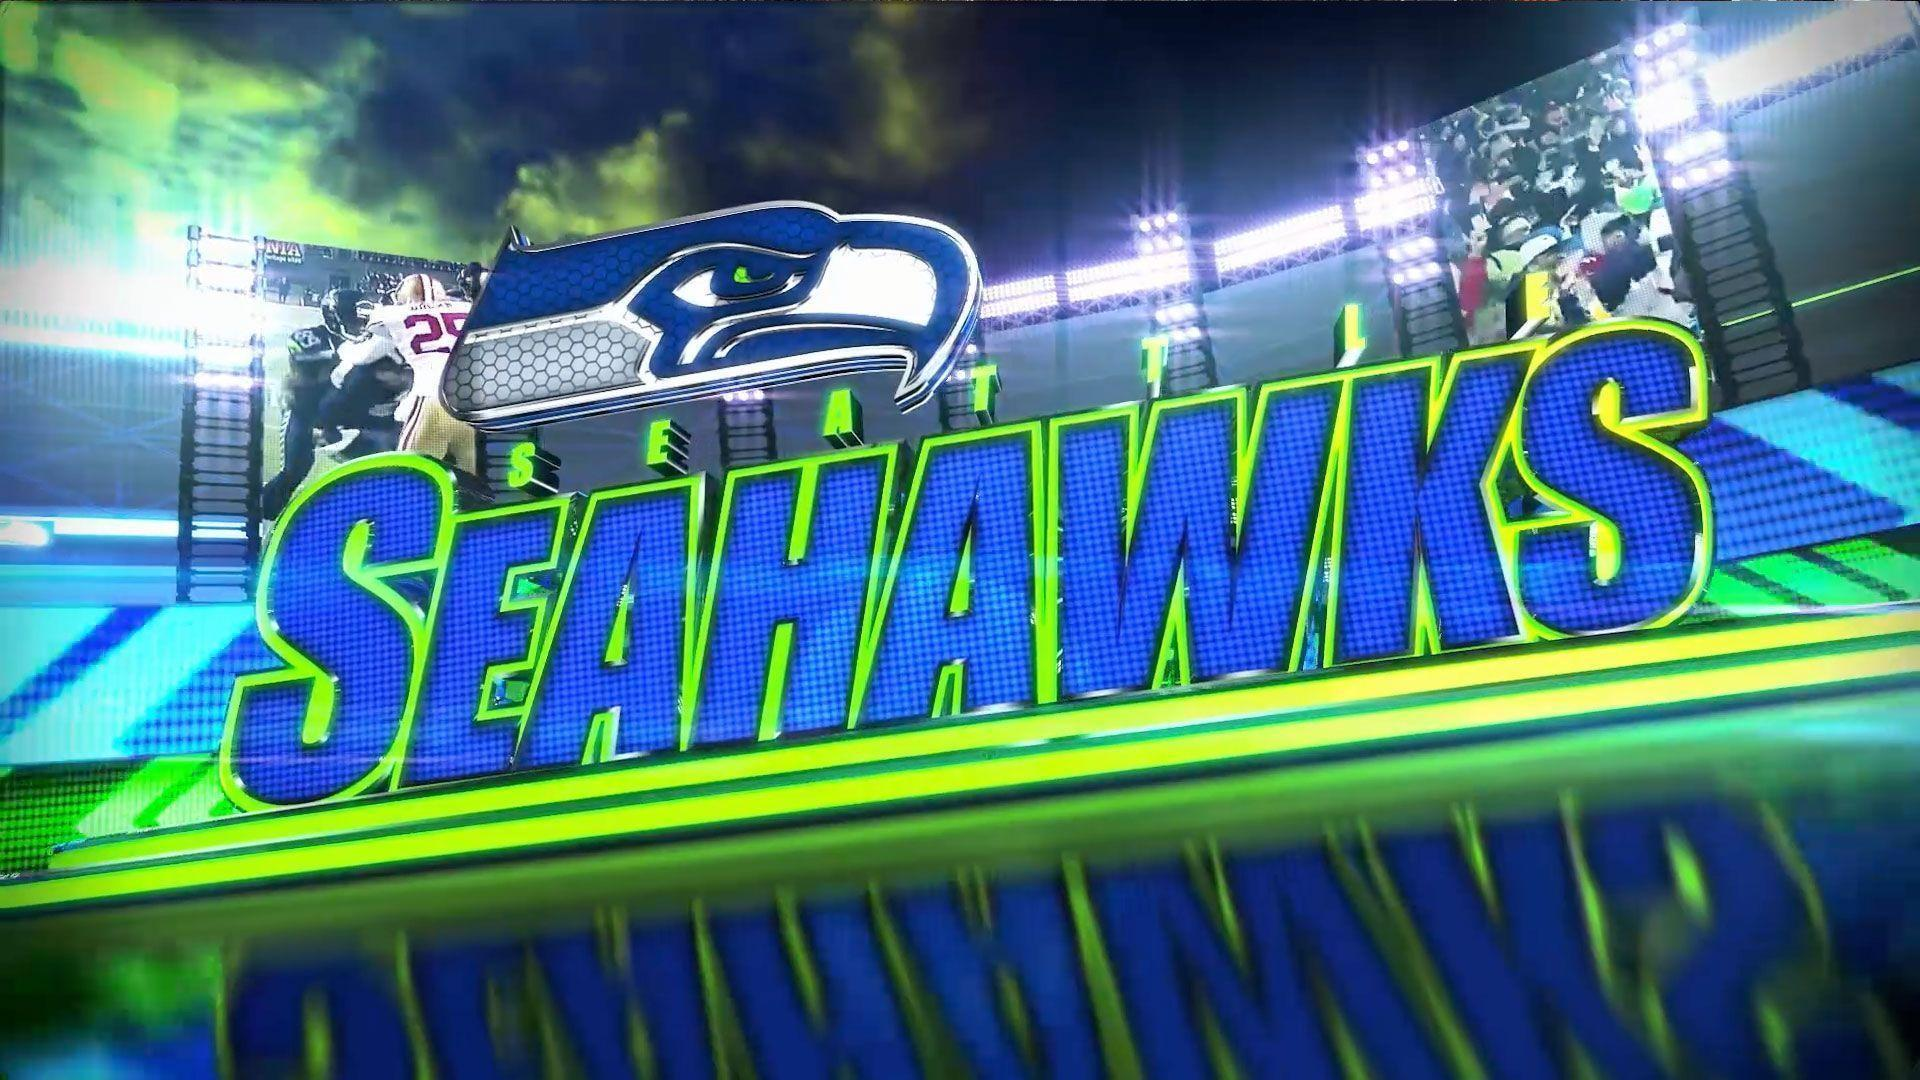 Seattle Seahawks color code Logo 87201 Wallpapers Image